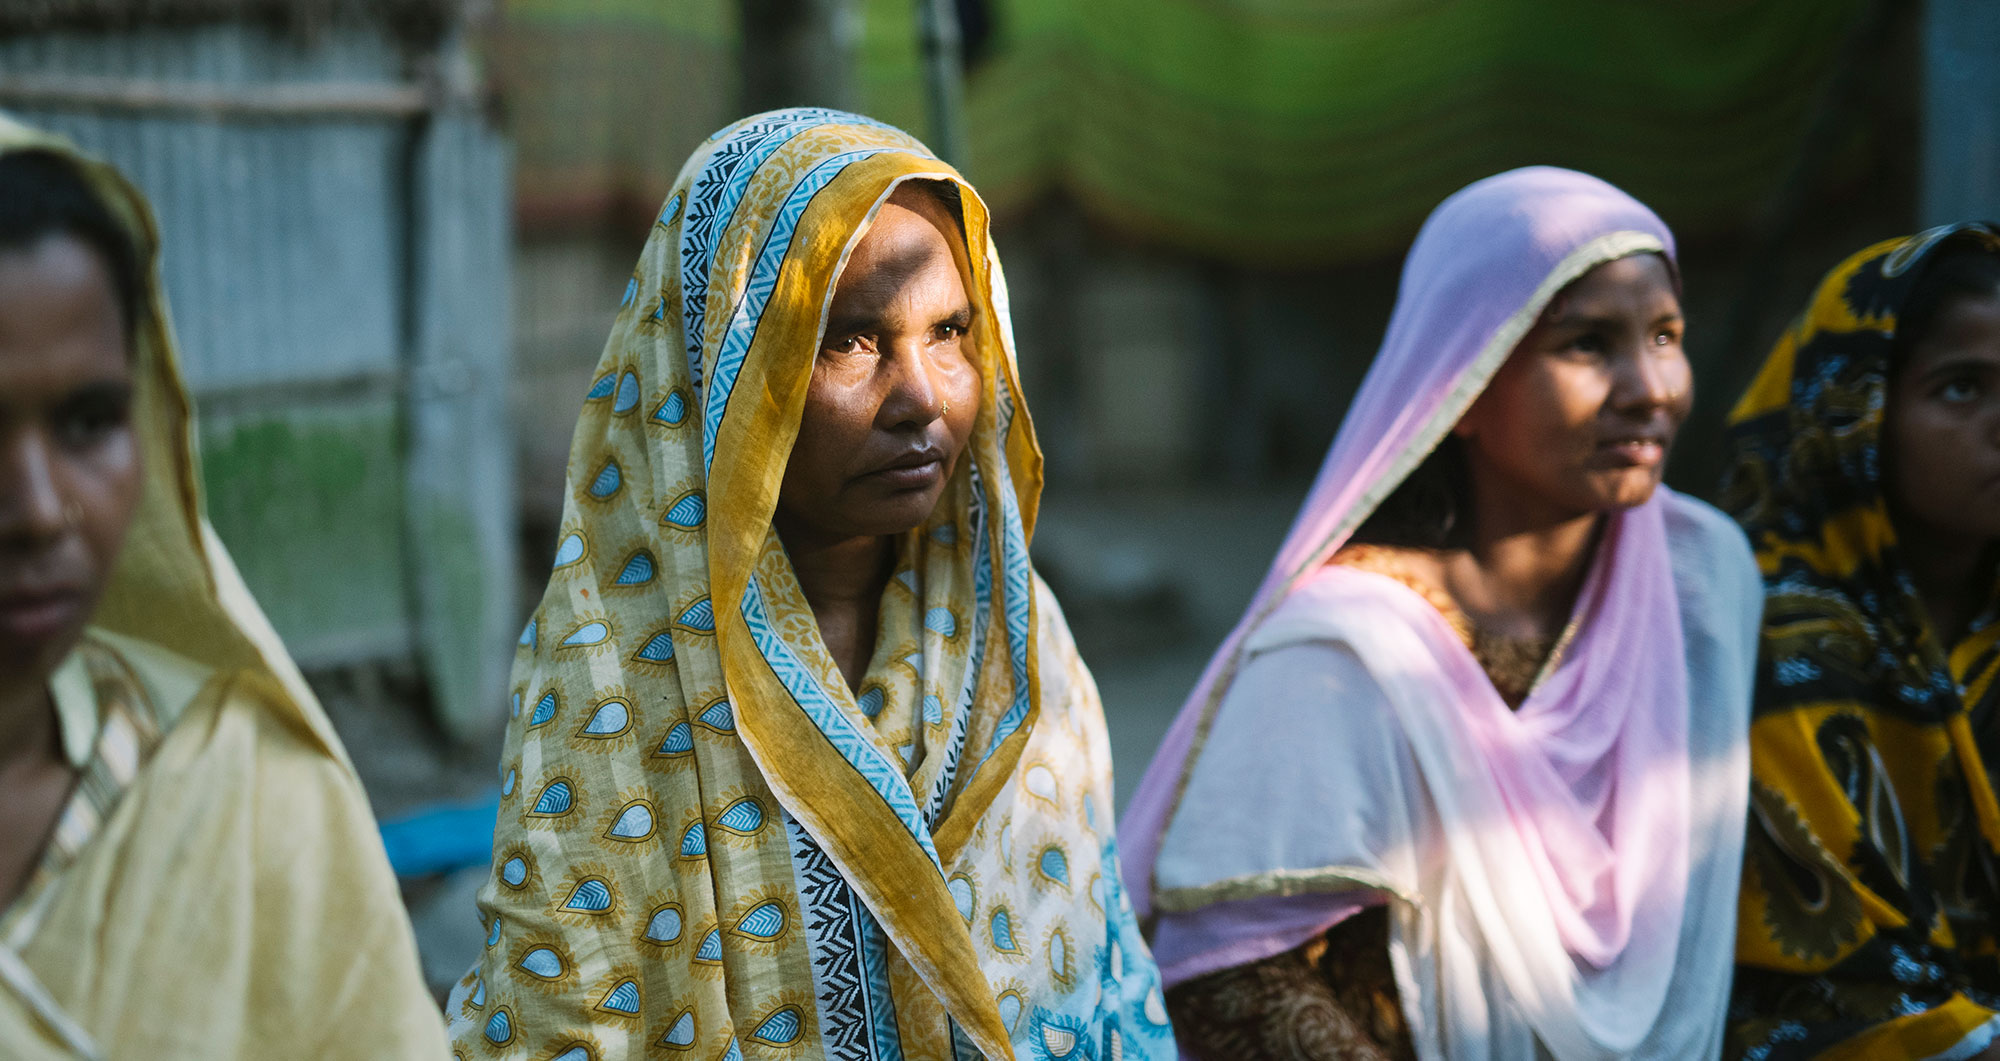 Women in Bangladesh meet as part of BRAC's Human Rights and Legal Services program